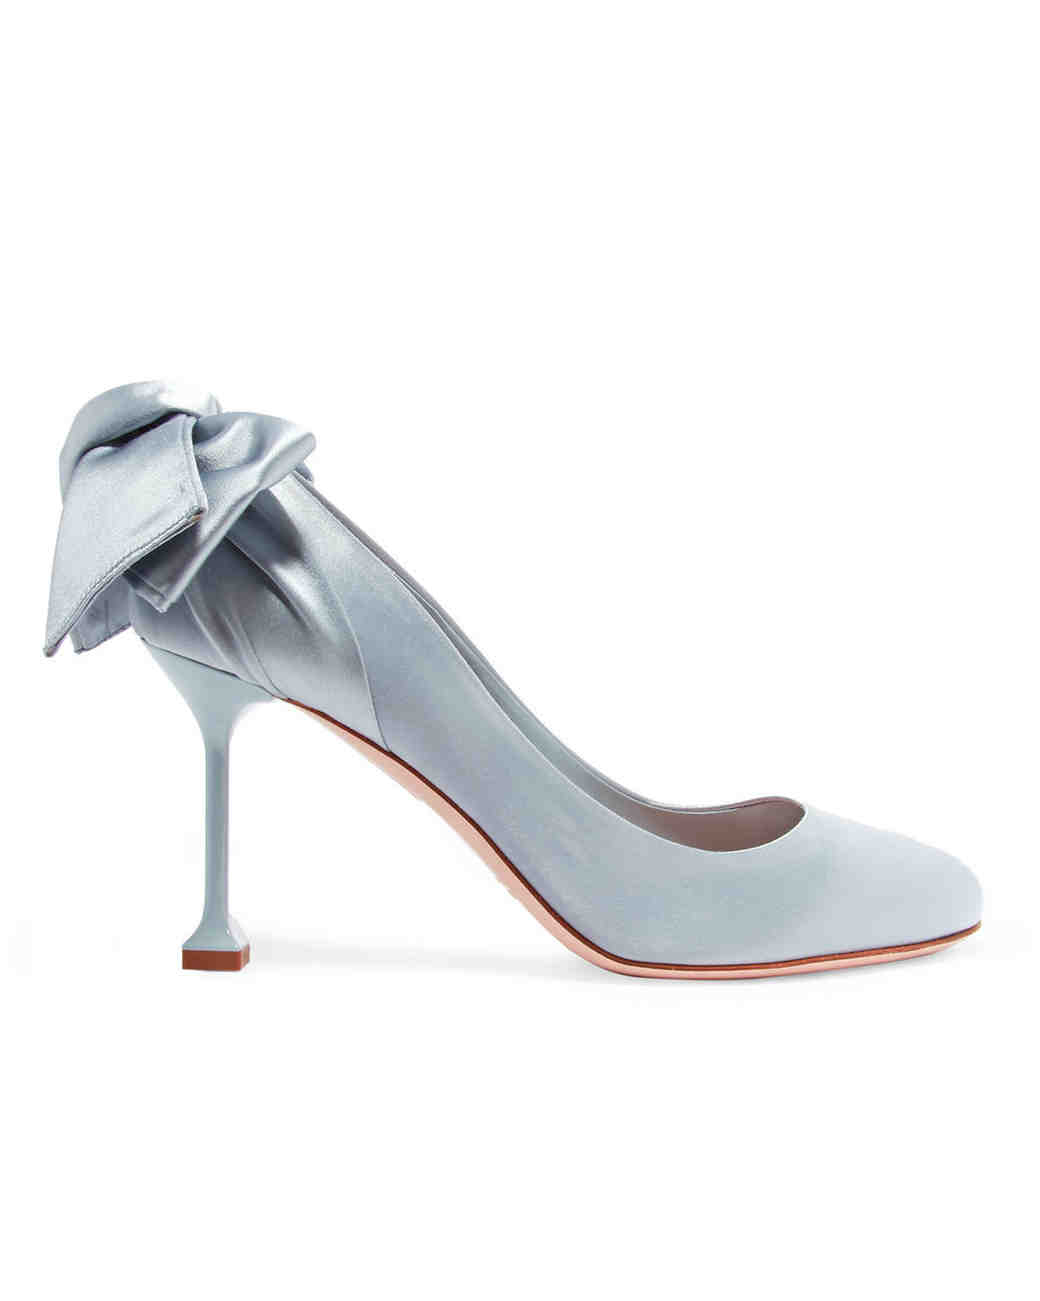 Closed Toe Evening Shoes To Rock For Your Winter Wedding Martha Weddings